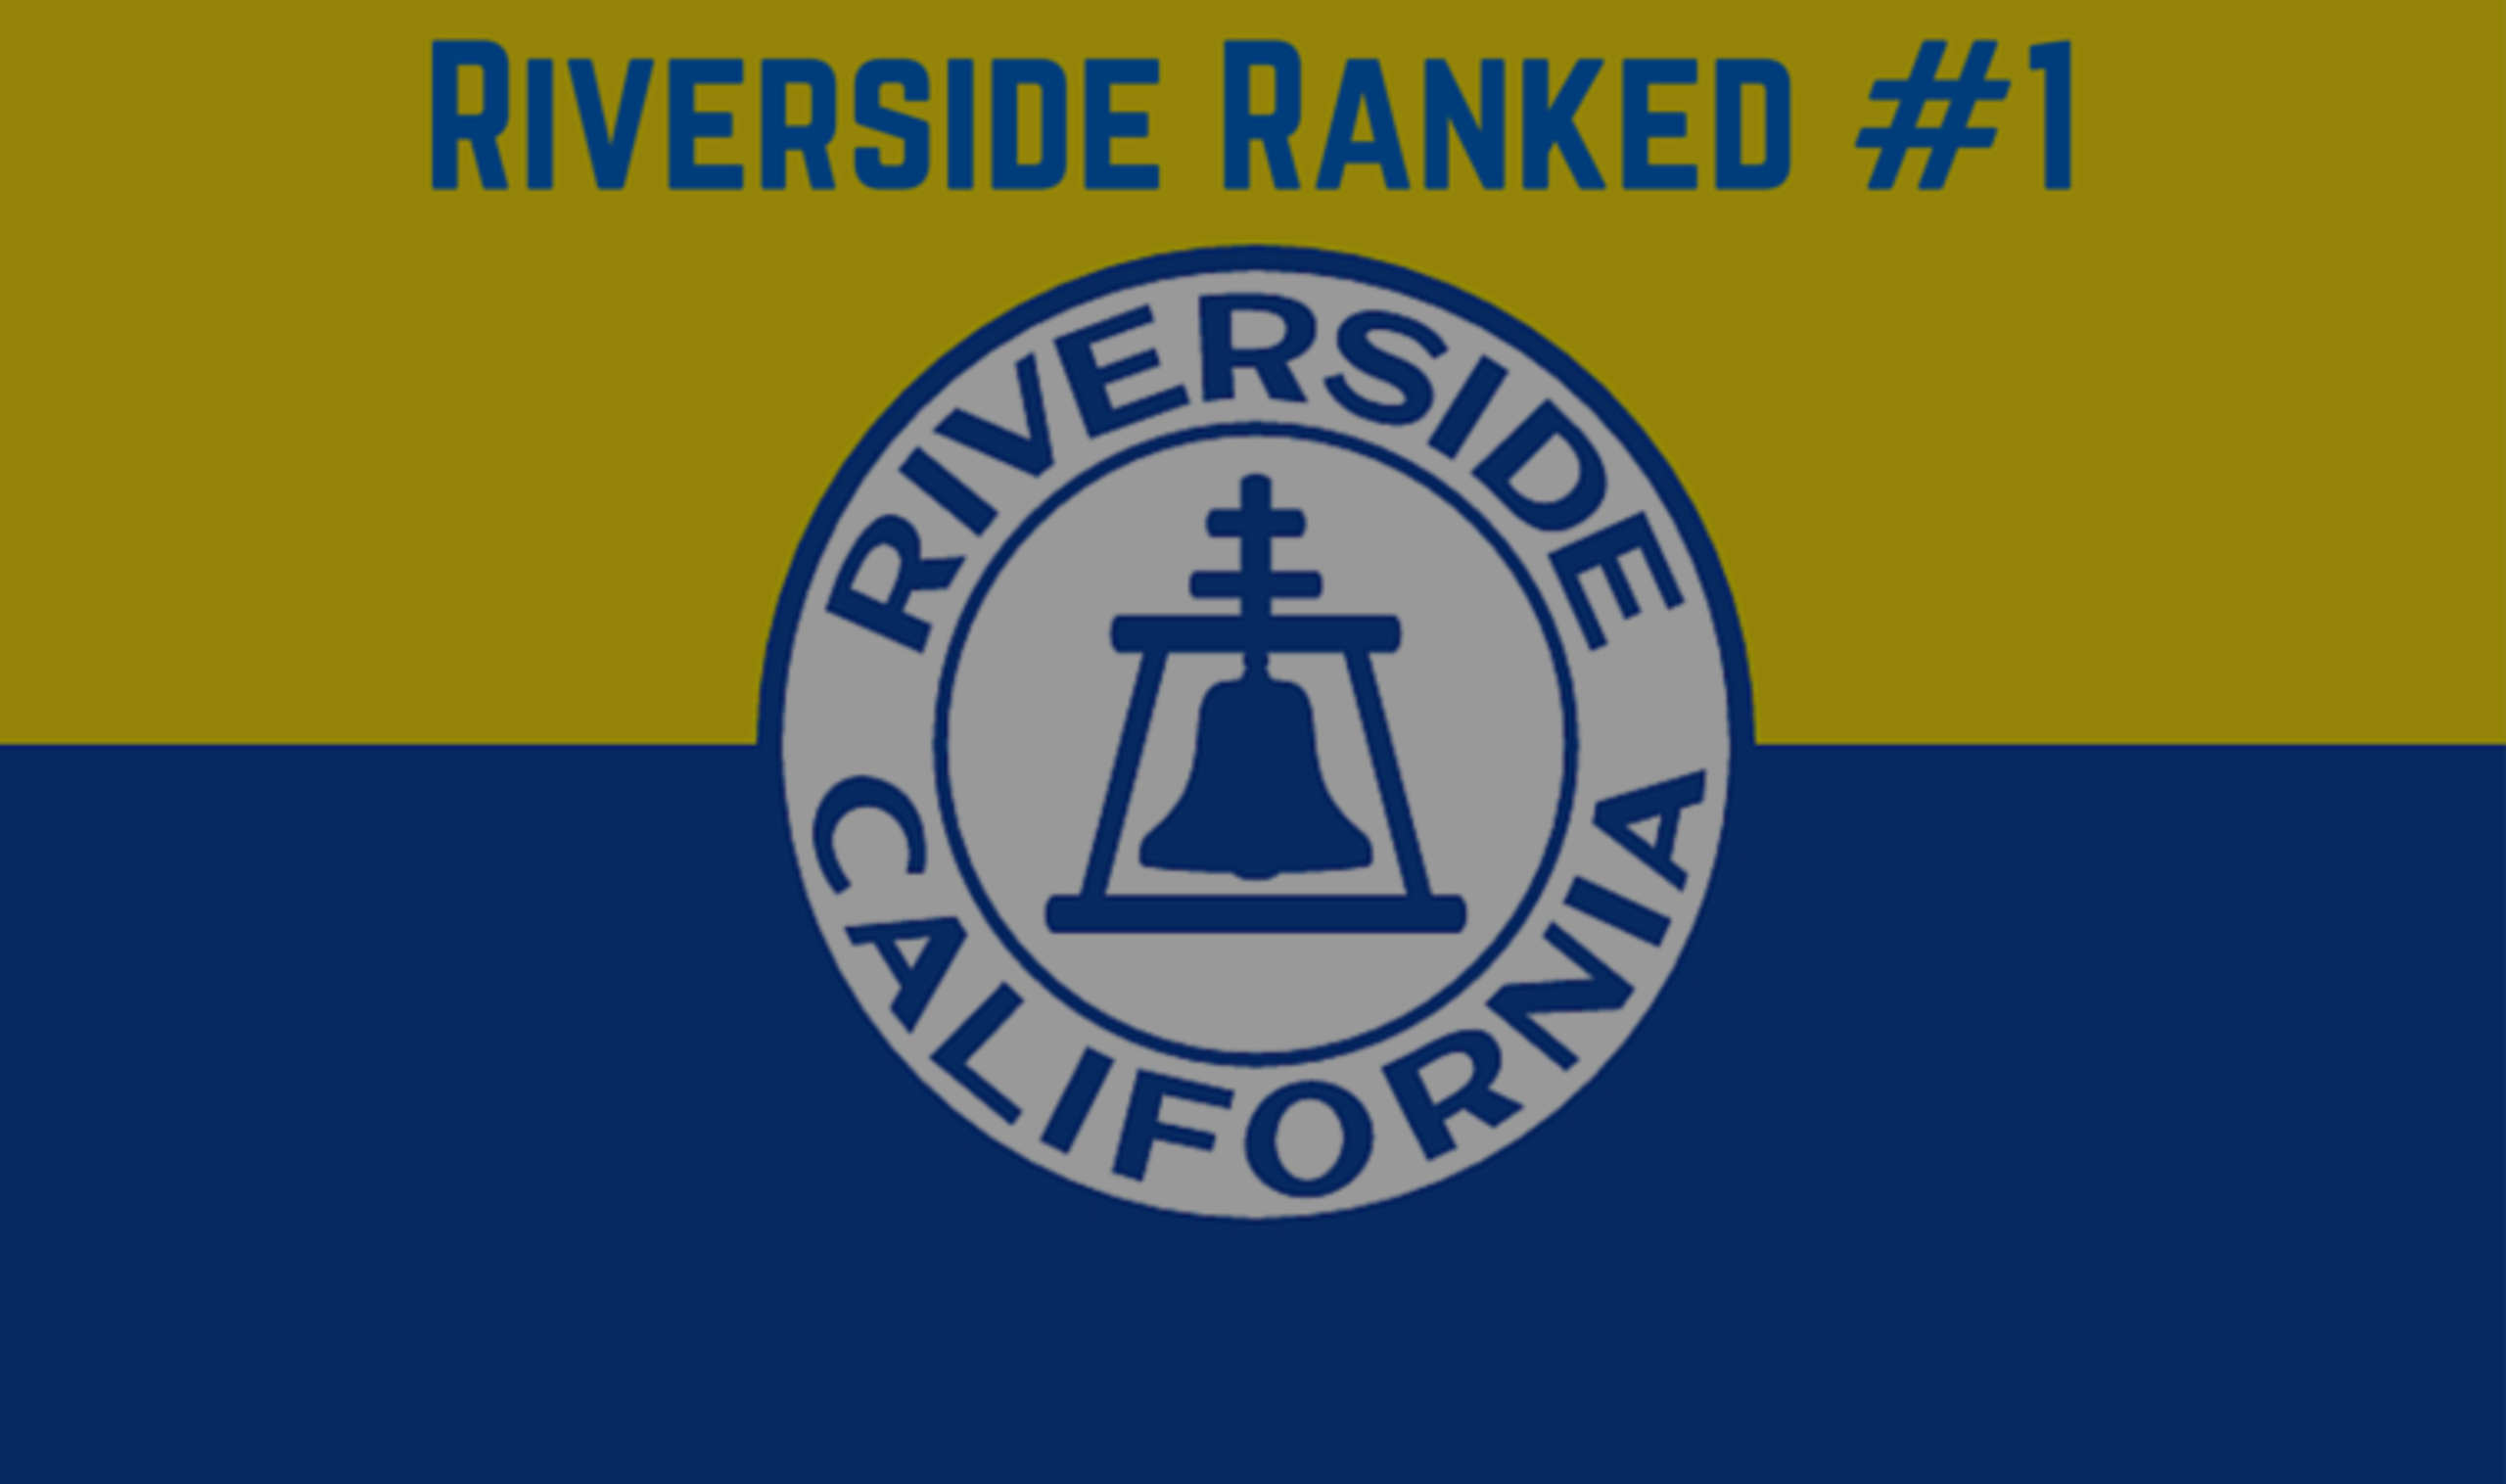 Riverside Ranked Best Place For Business in America